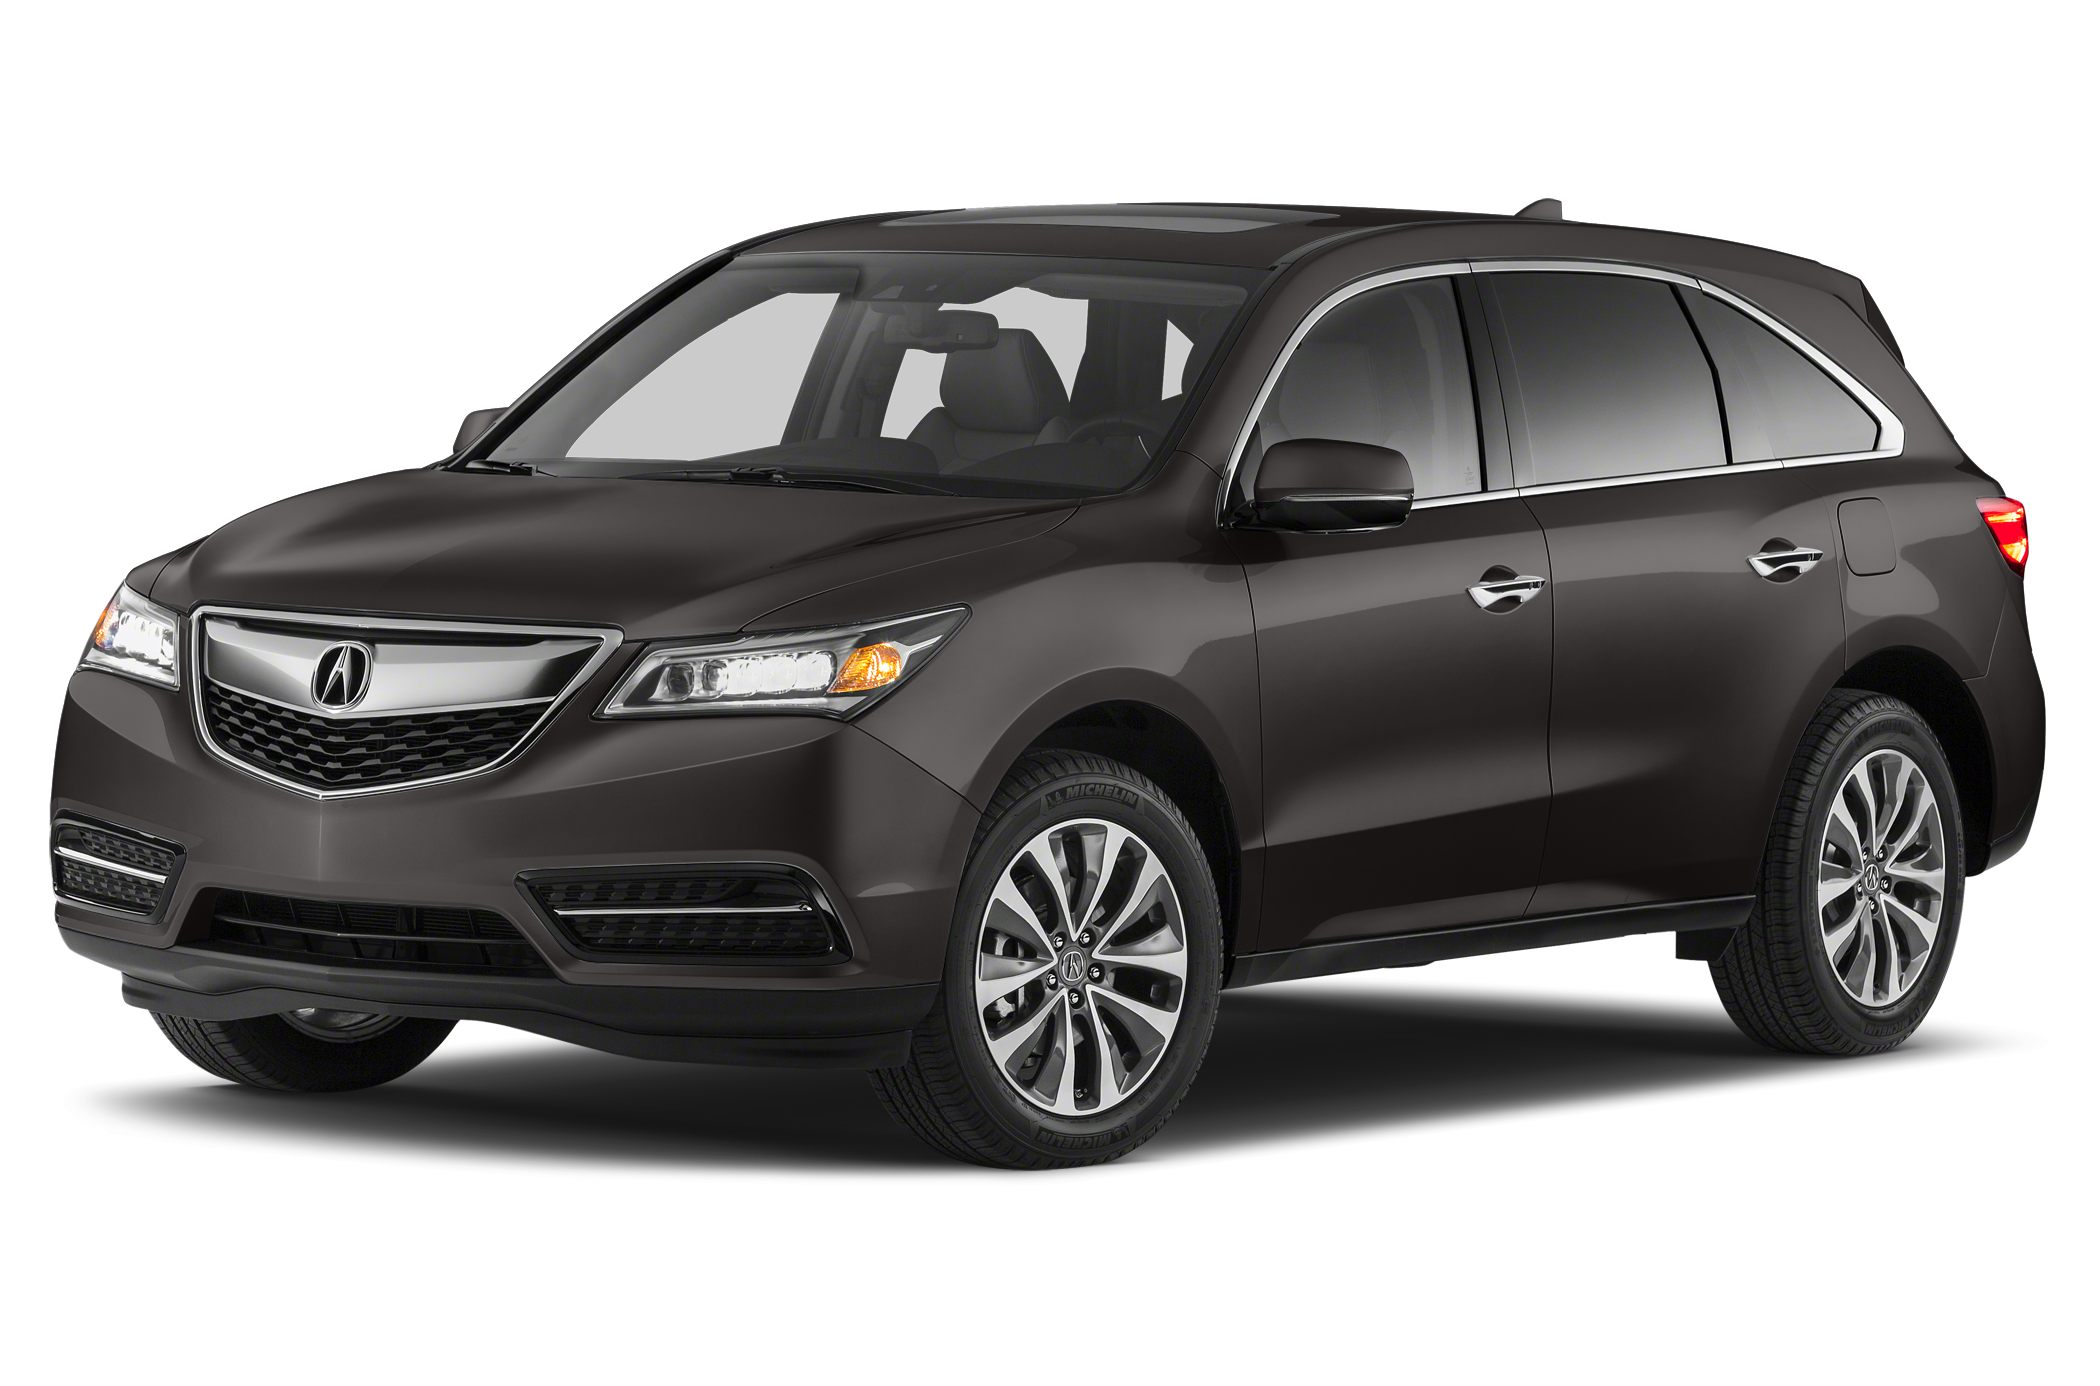 acura mdx images